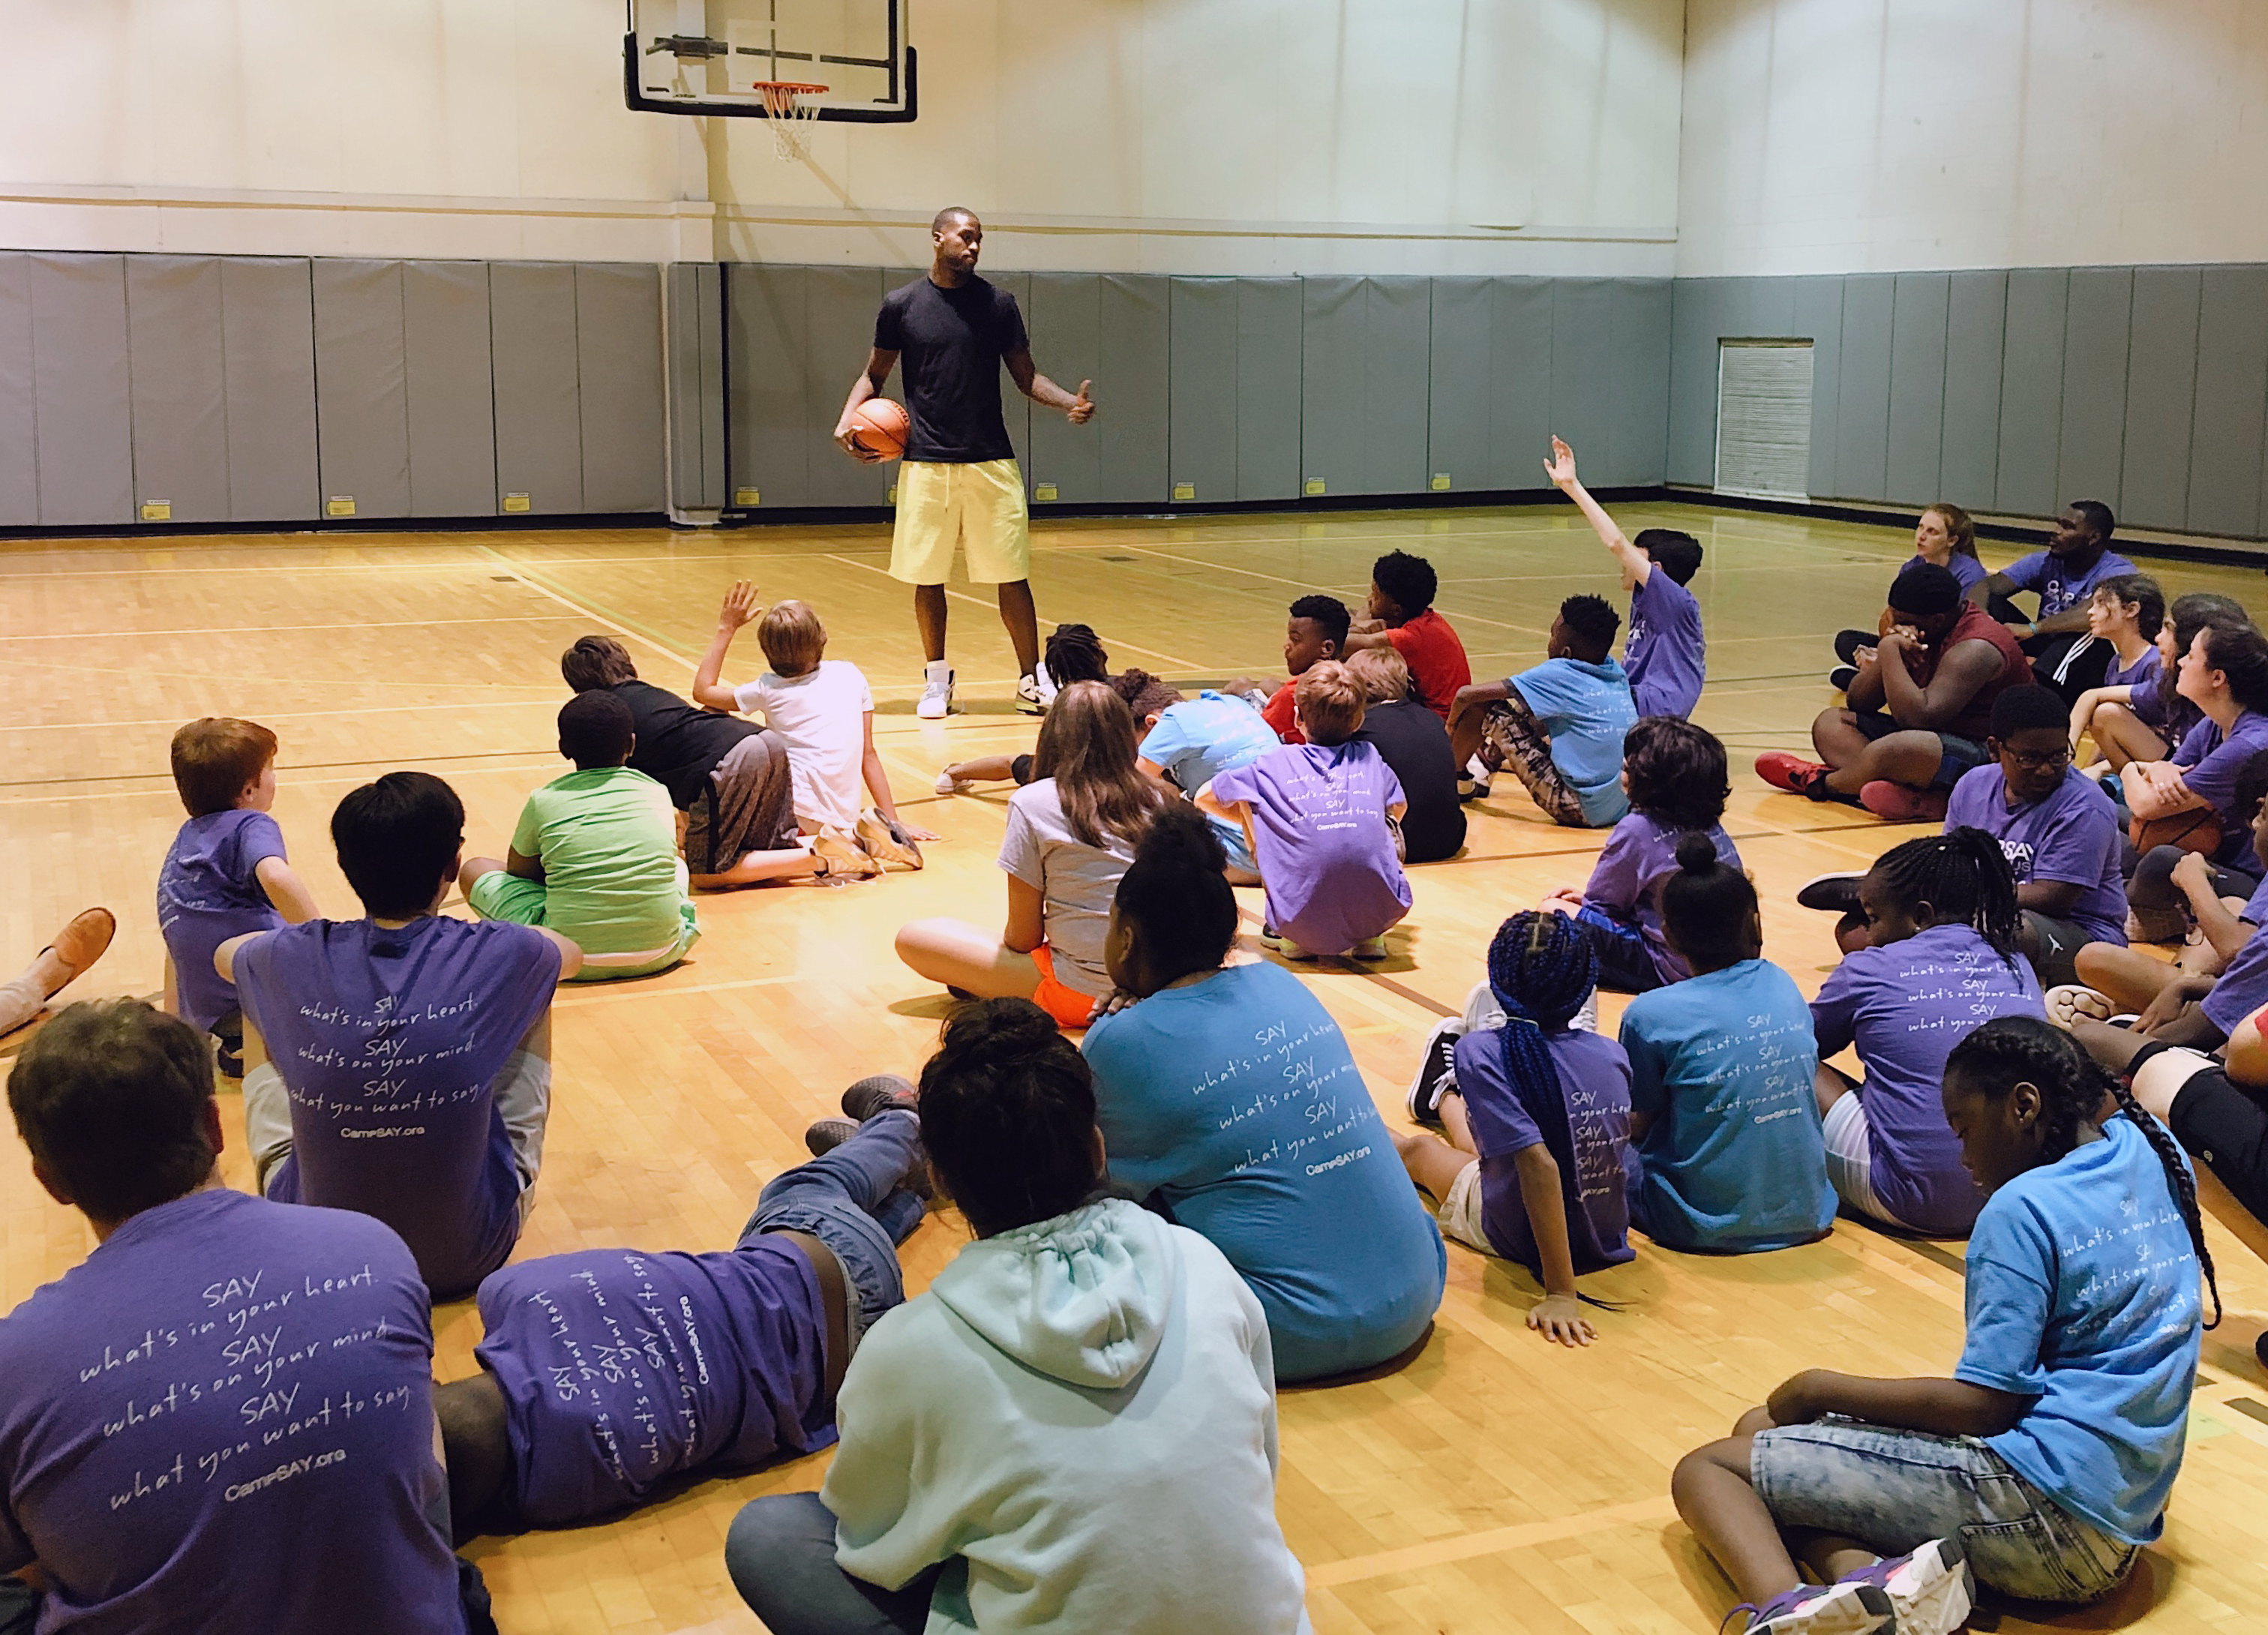 Camp SAY Across the USA: Charlotte hosted by Michael Kidd Gilchrist